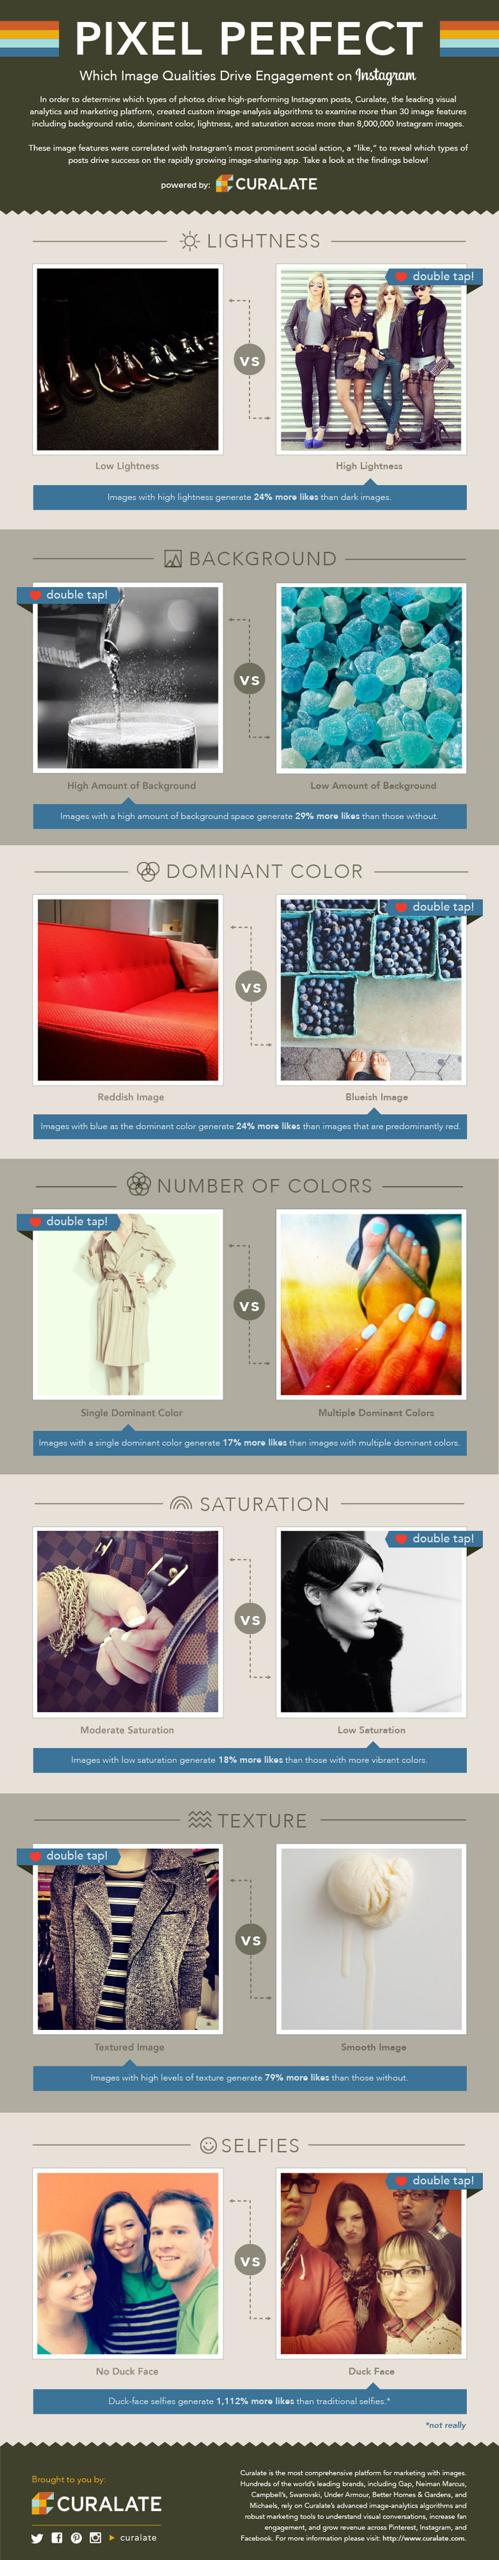 Curalate Instagram Infographic